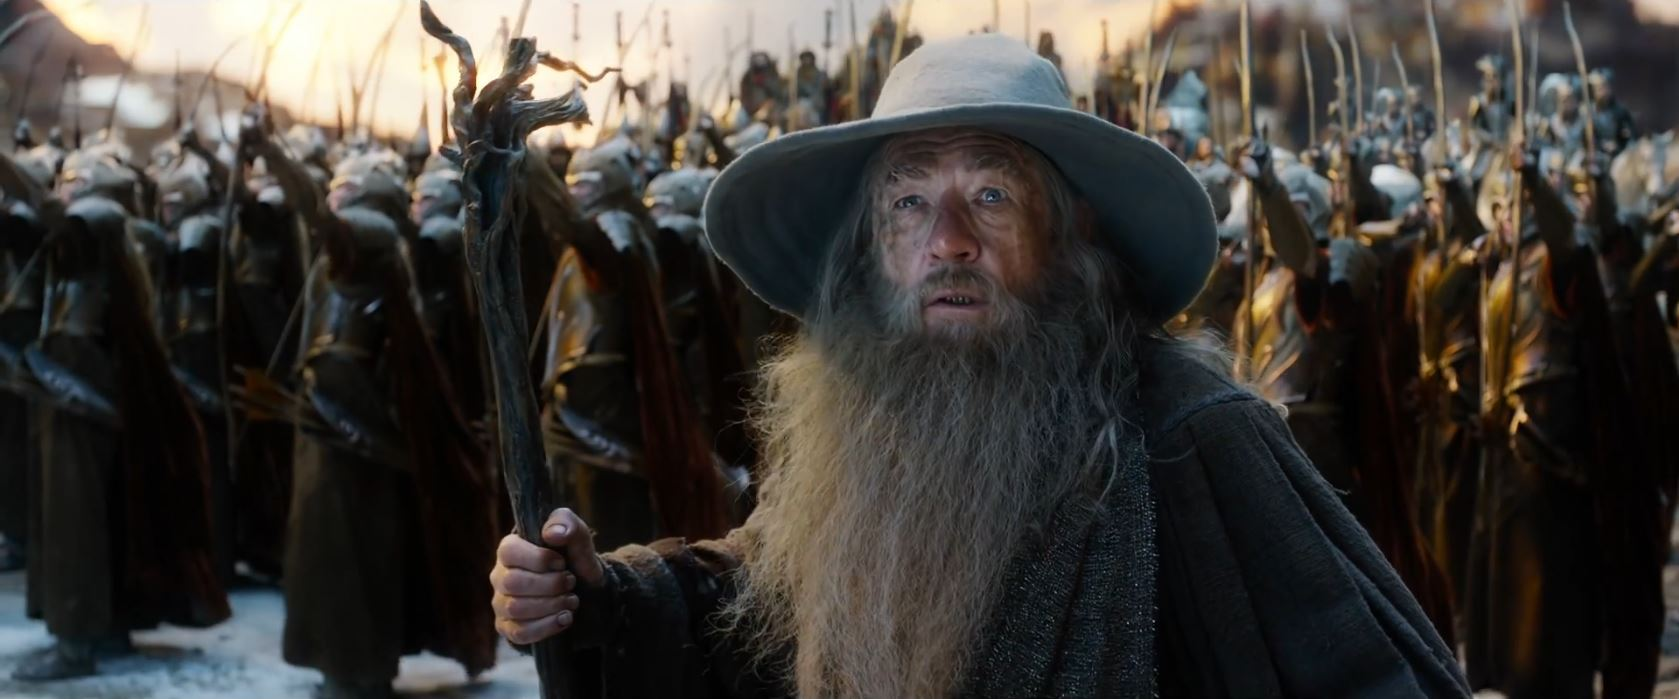 The Hobbit The Battle of the Five Armies Trailer - Ian McKellen as Gandalf